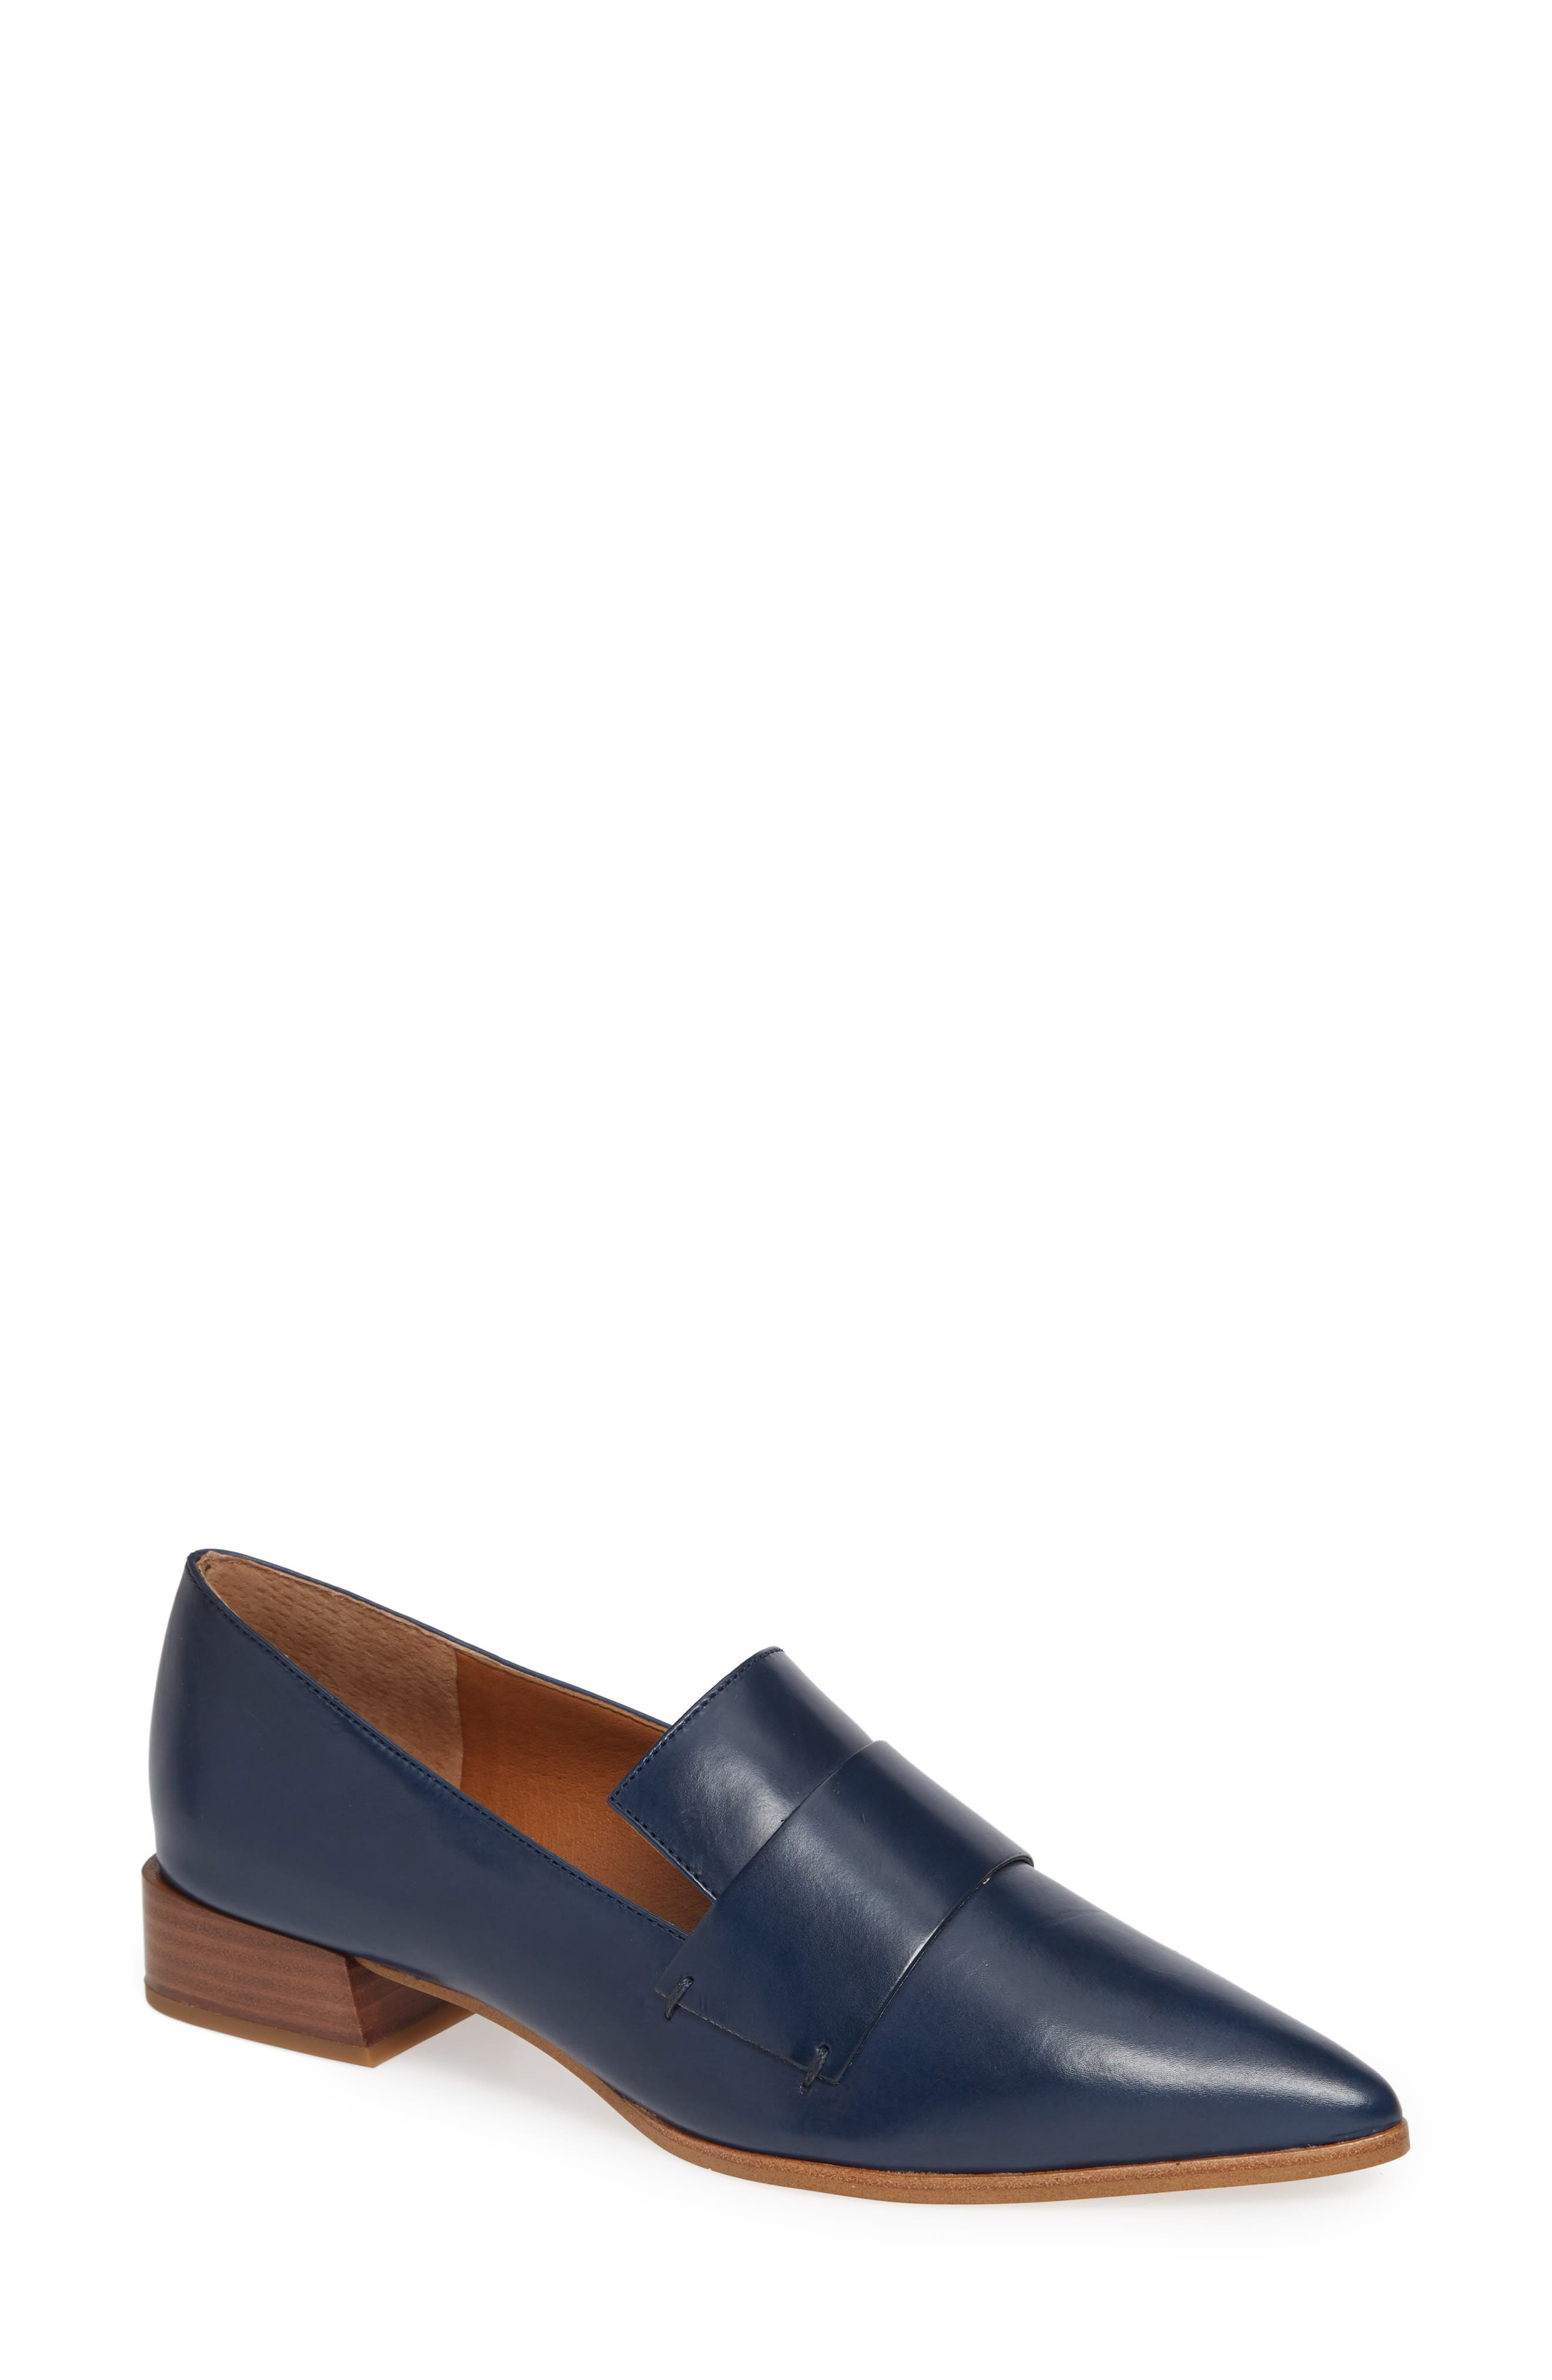 Nebby 2 Pointy Toe Loafer,                             Main thumbnail 1, color,                             NAVY LEATHER